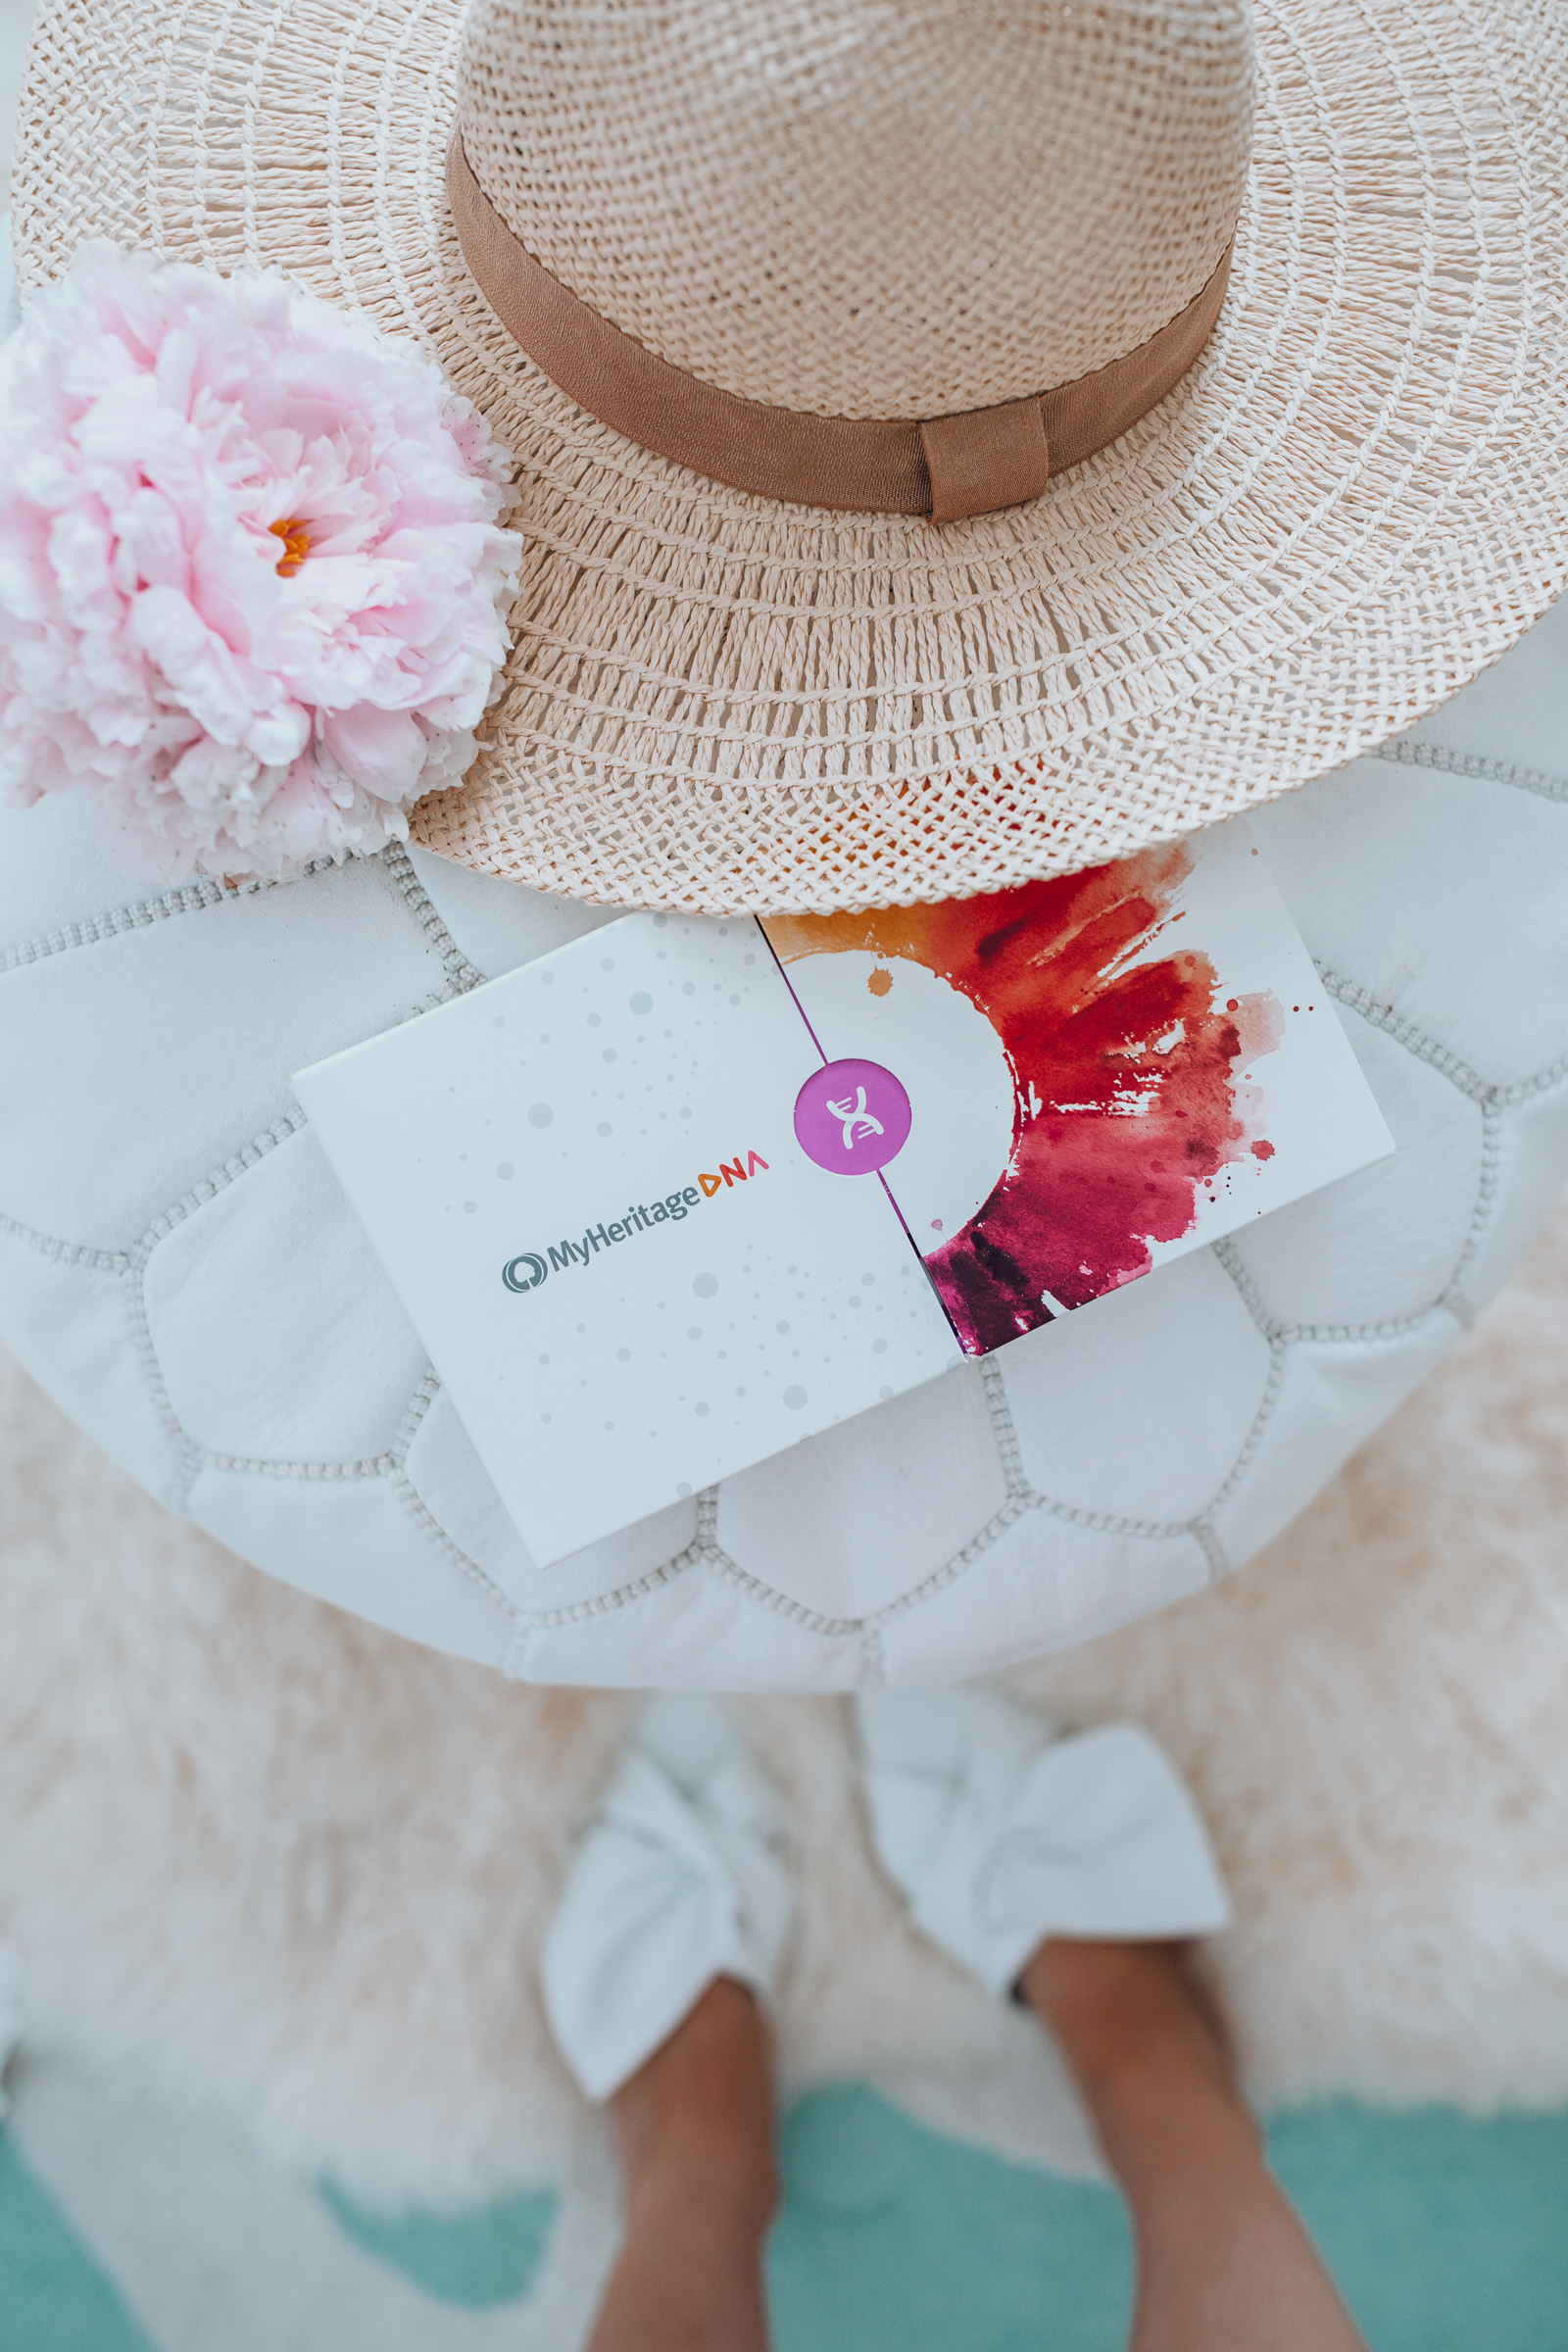 MyHeritage DNA test kit - Happily Inspired